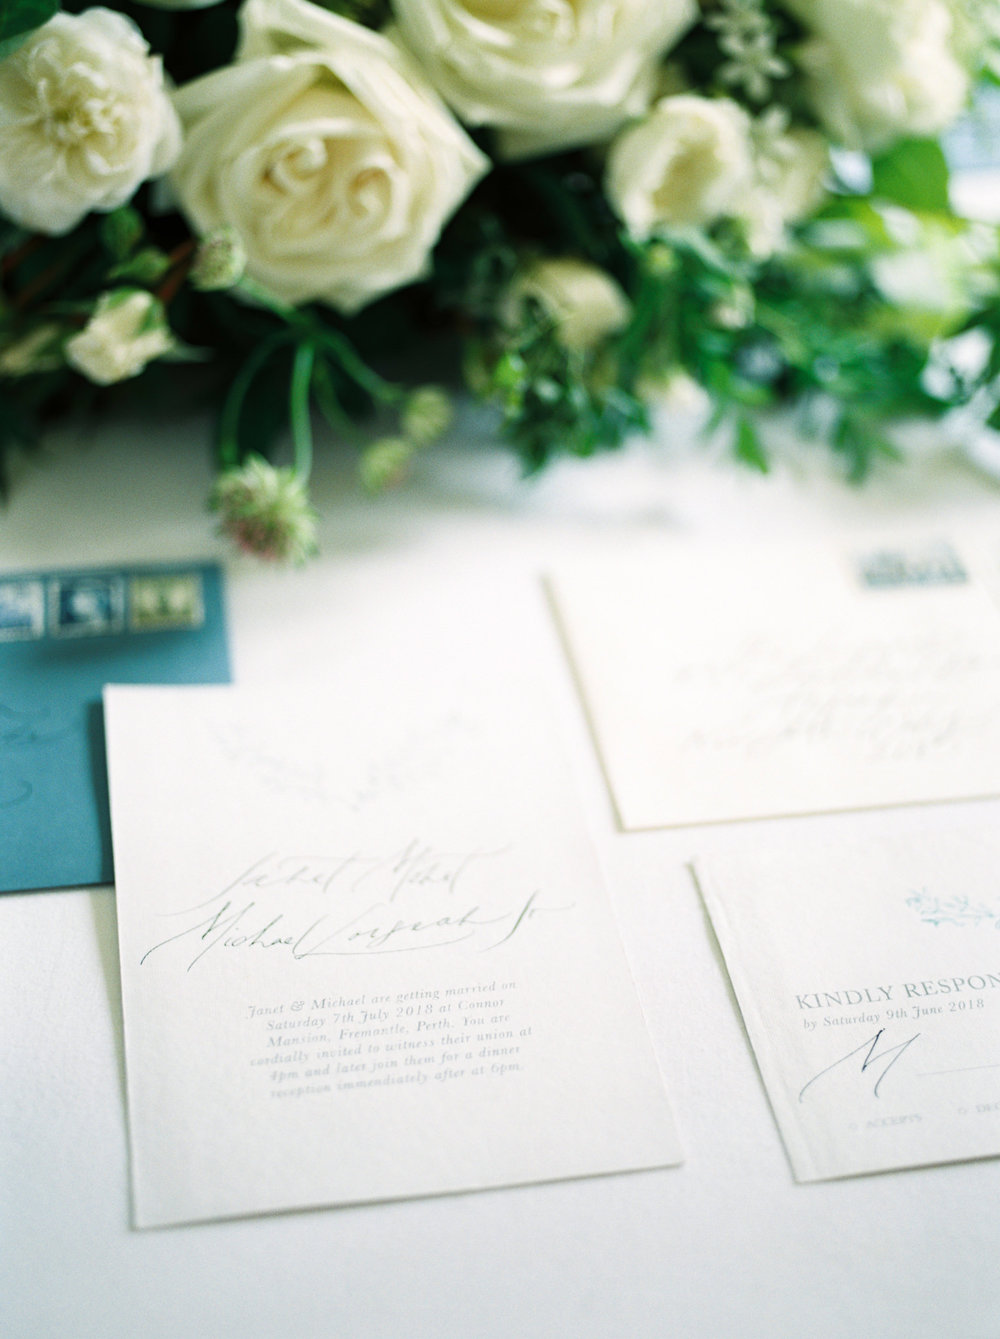 Classic elegant invitations  Photo by  Jonathan Chua Photography